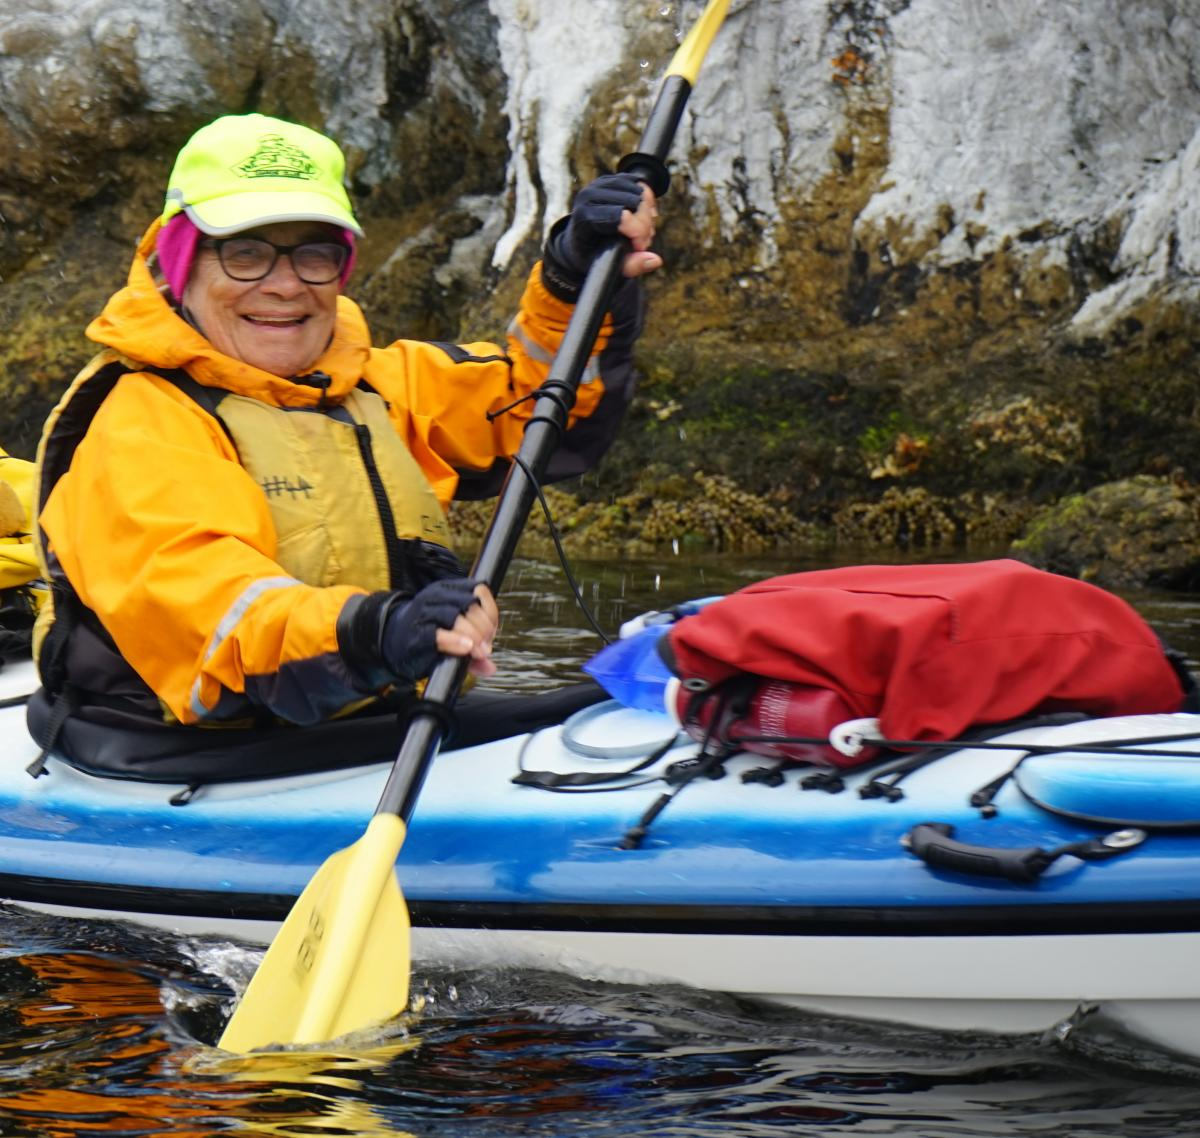 Roaring 40s Kayaking blog - Reg's top tips for kayaking as you get older